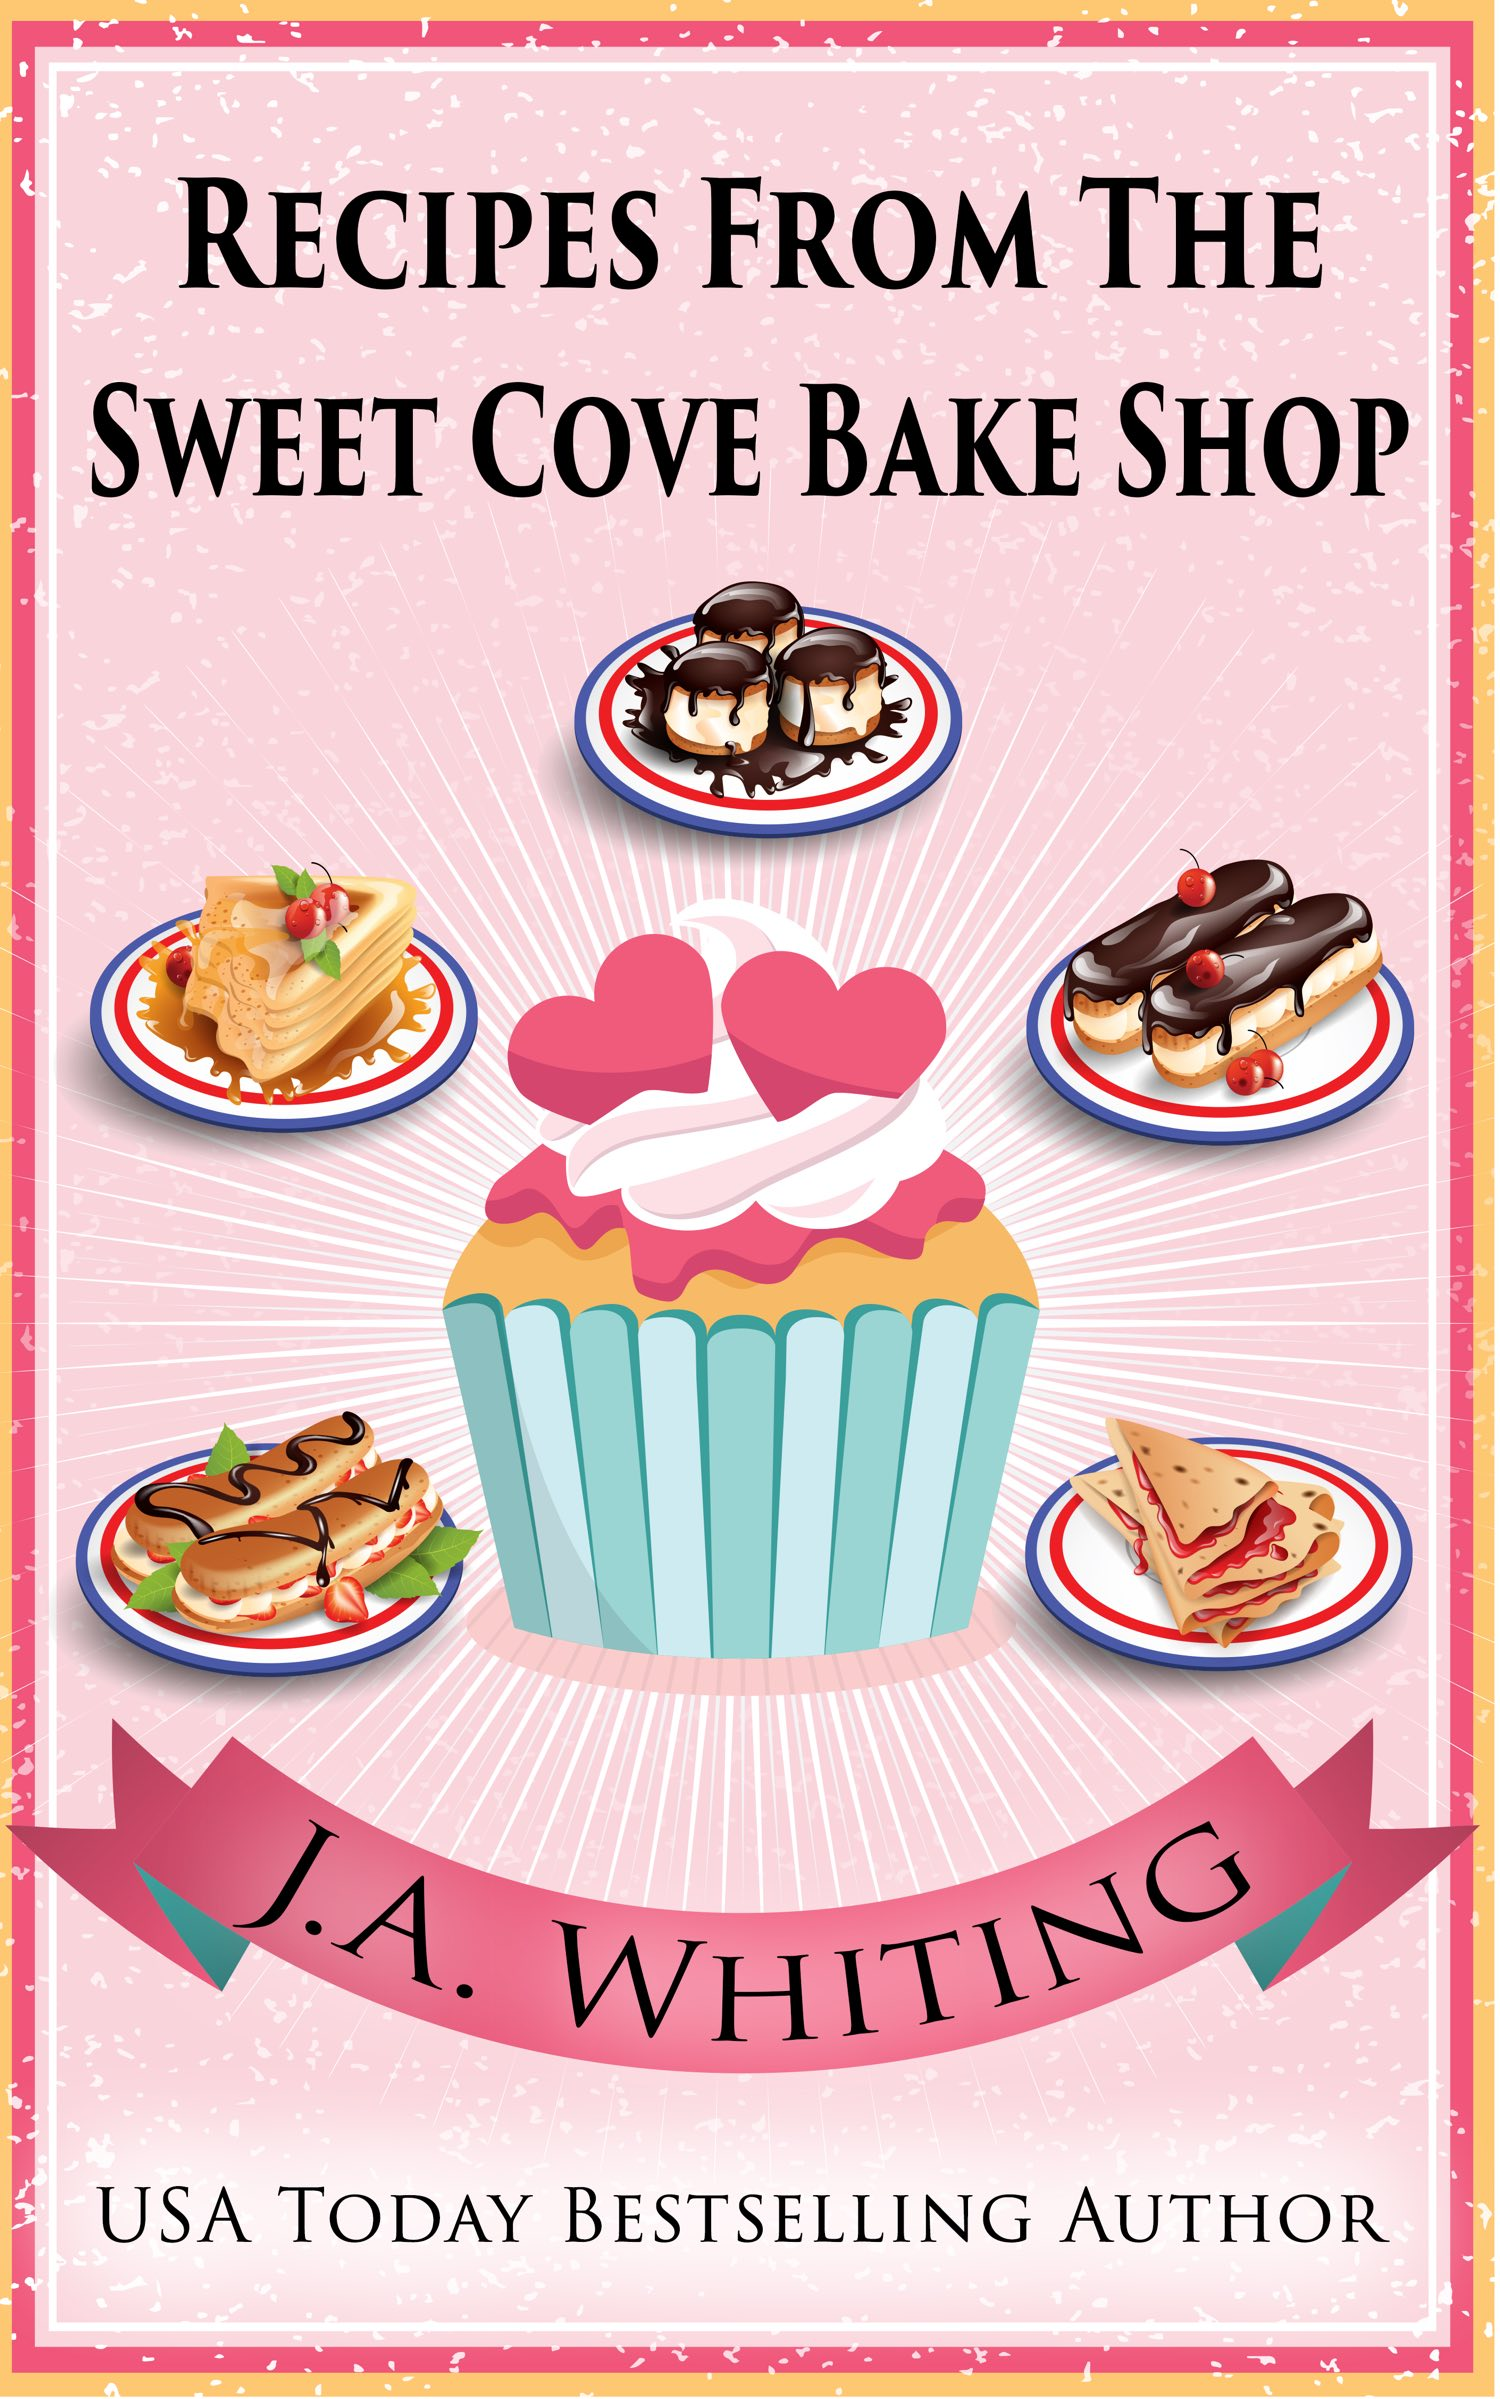 jawhiting-recipes-from-the-sweet-cove-bake-shop.jpg